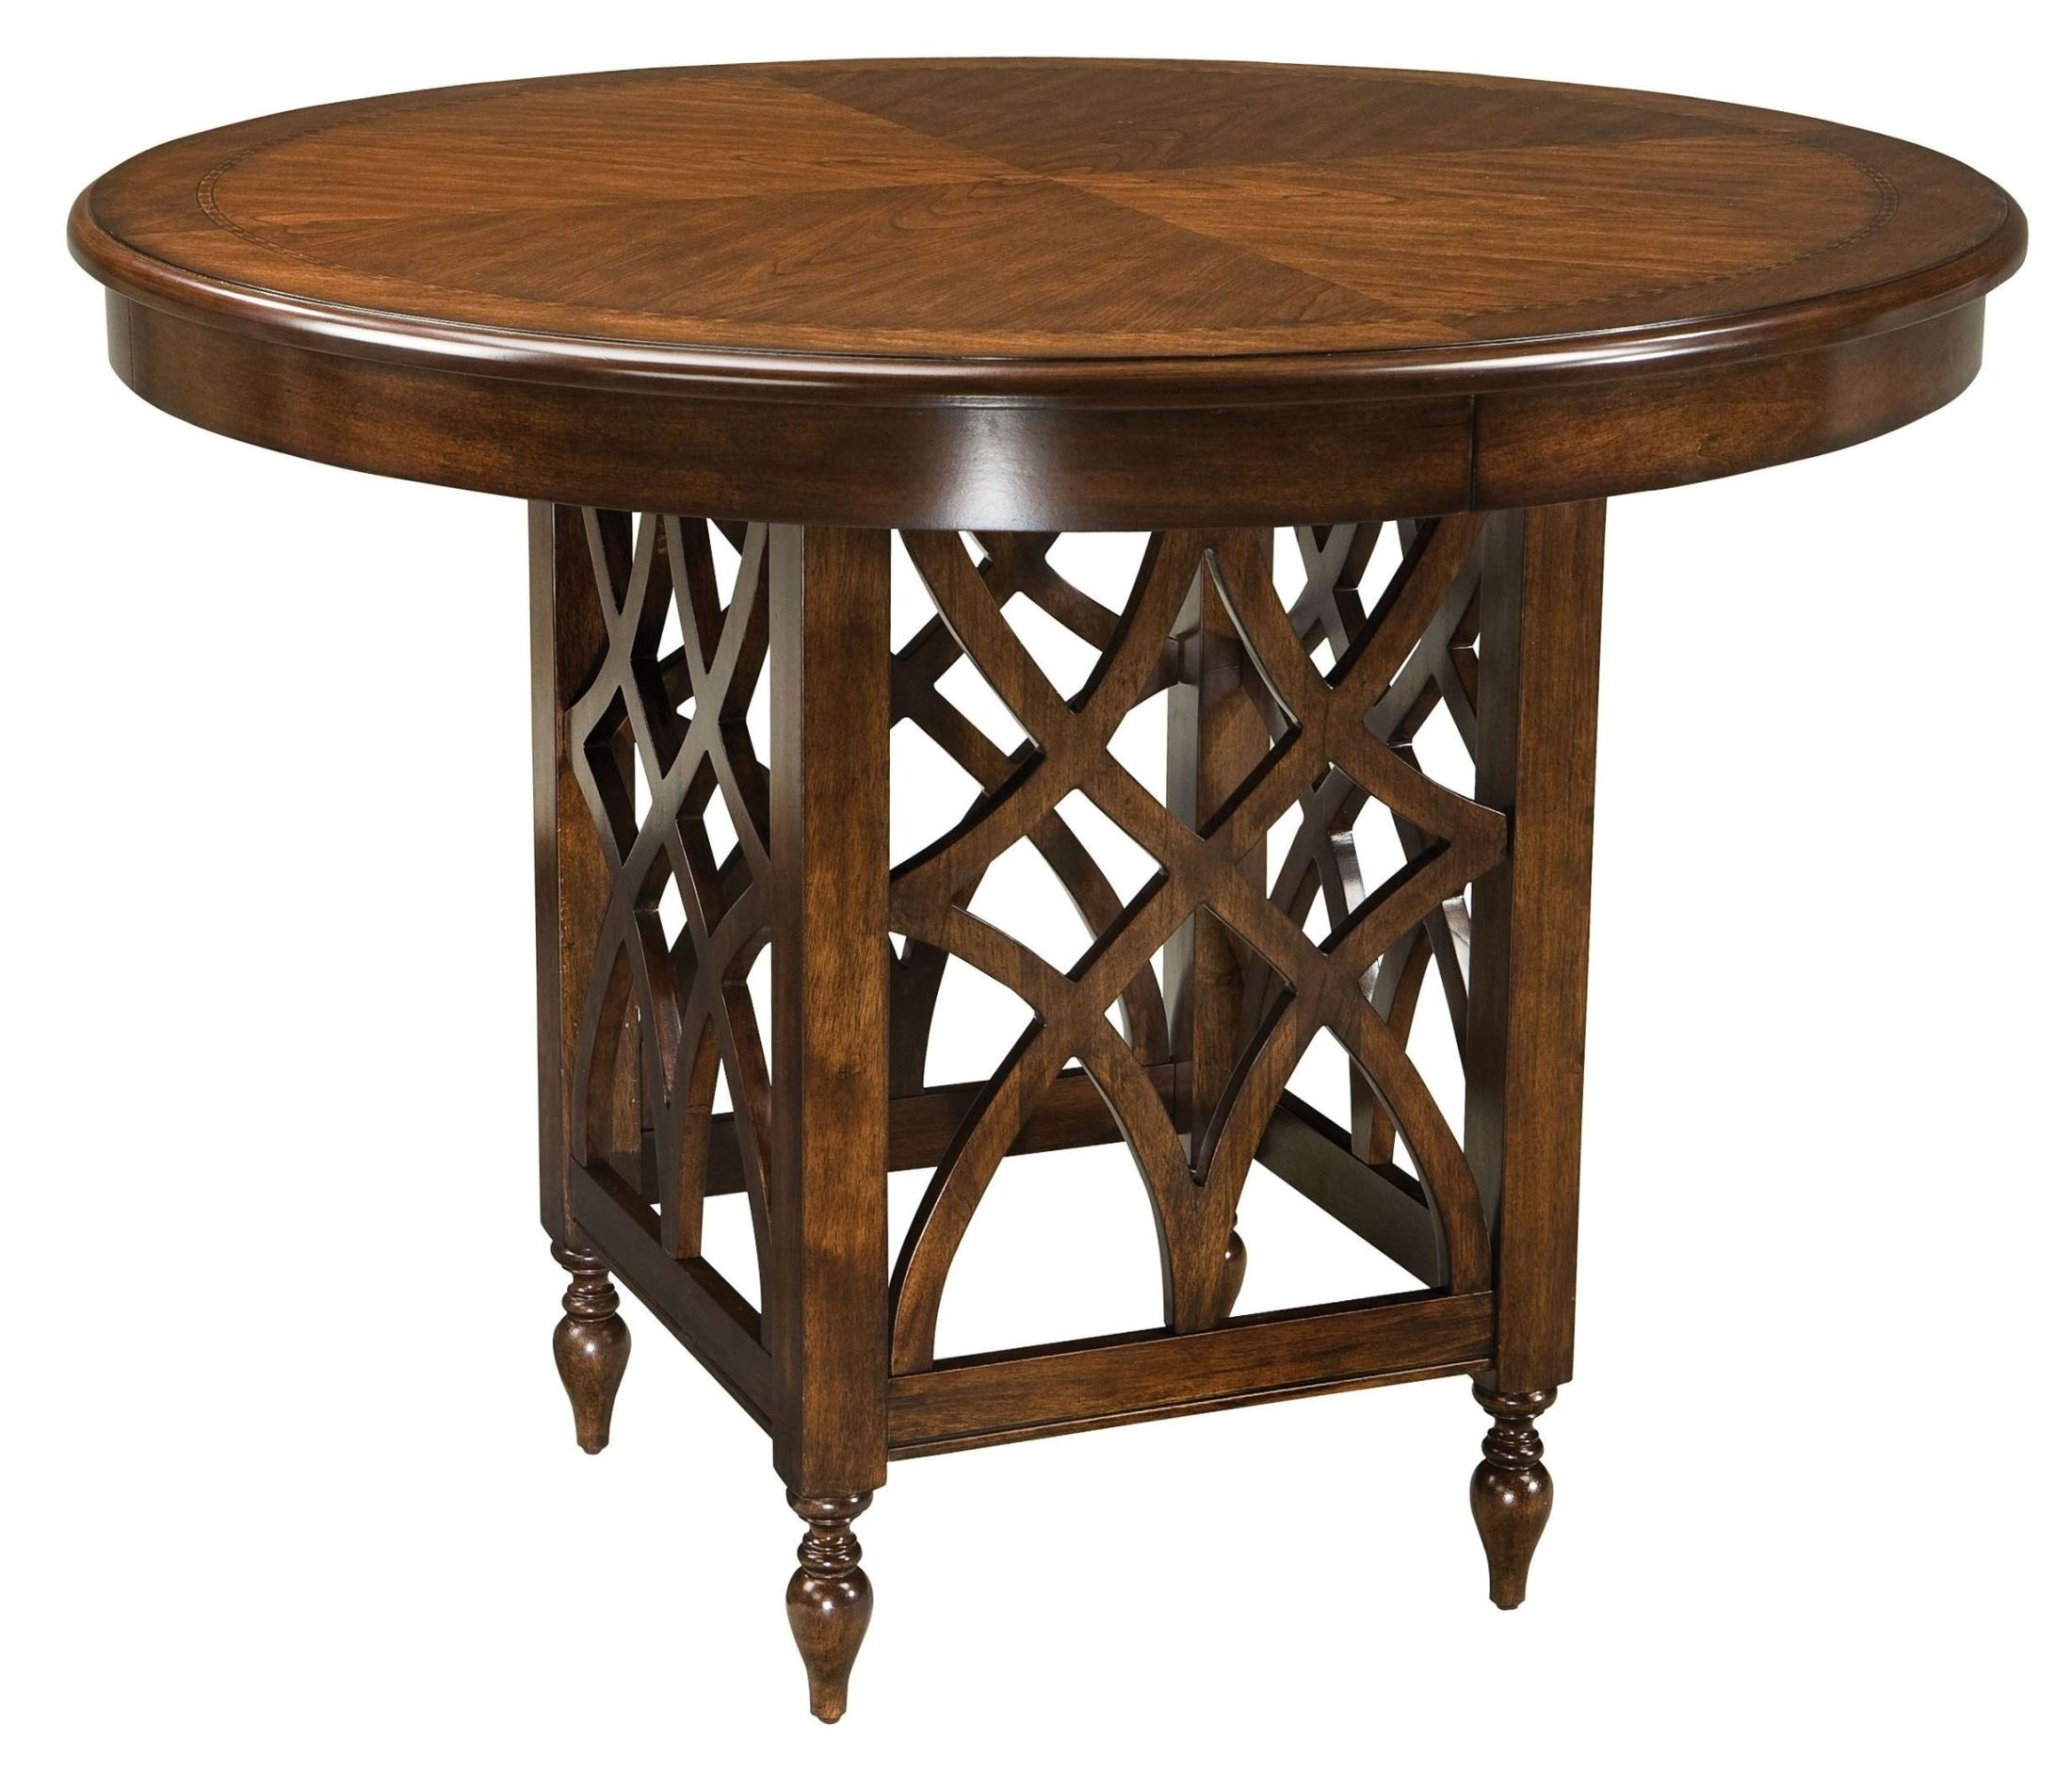 woodmont brown cherry round counter height table from standard 19196 coleman furniture. Black Bedroom Furniture Sets. Home Design Ideas